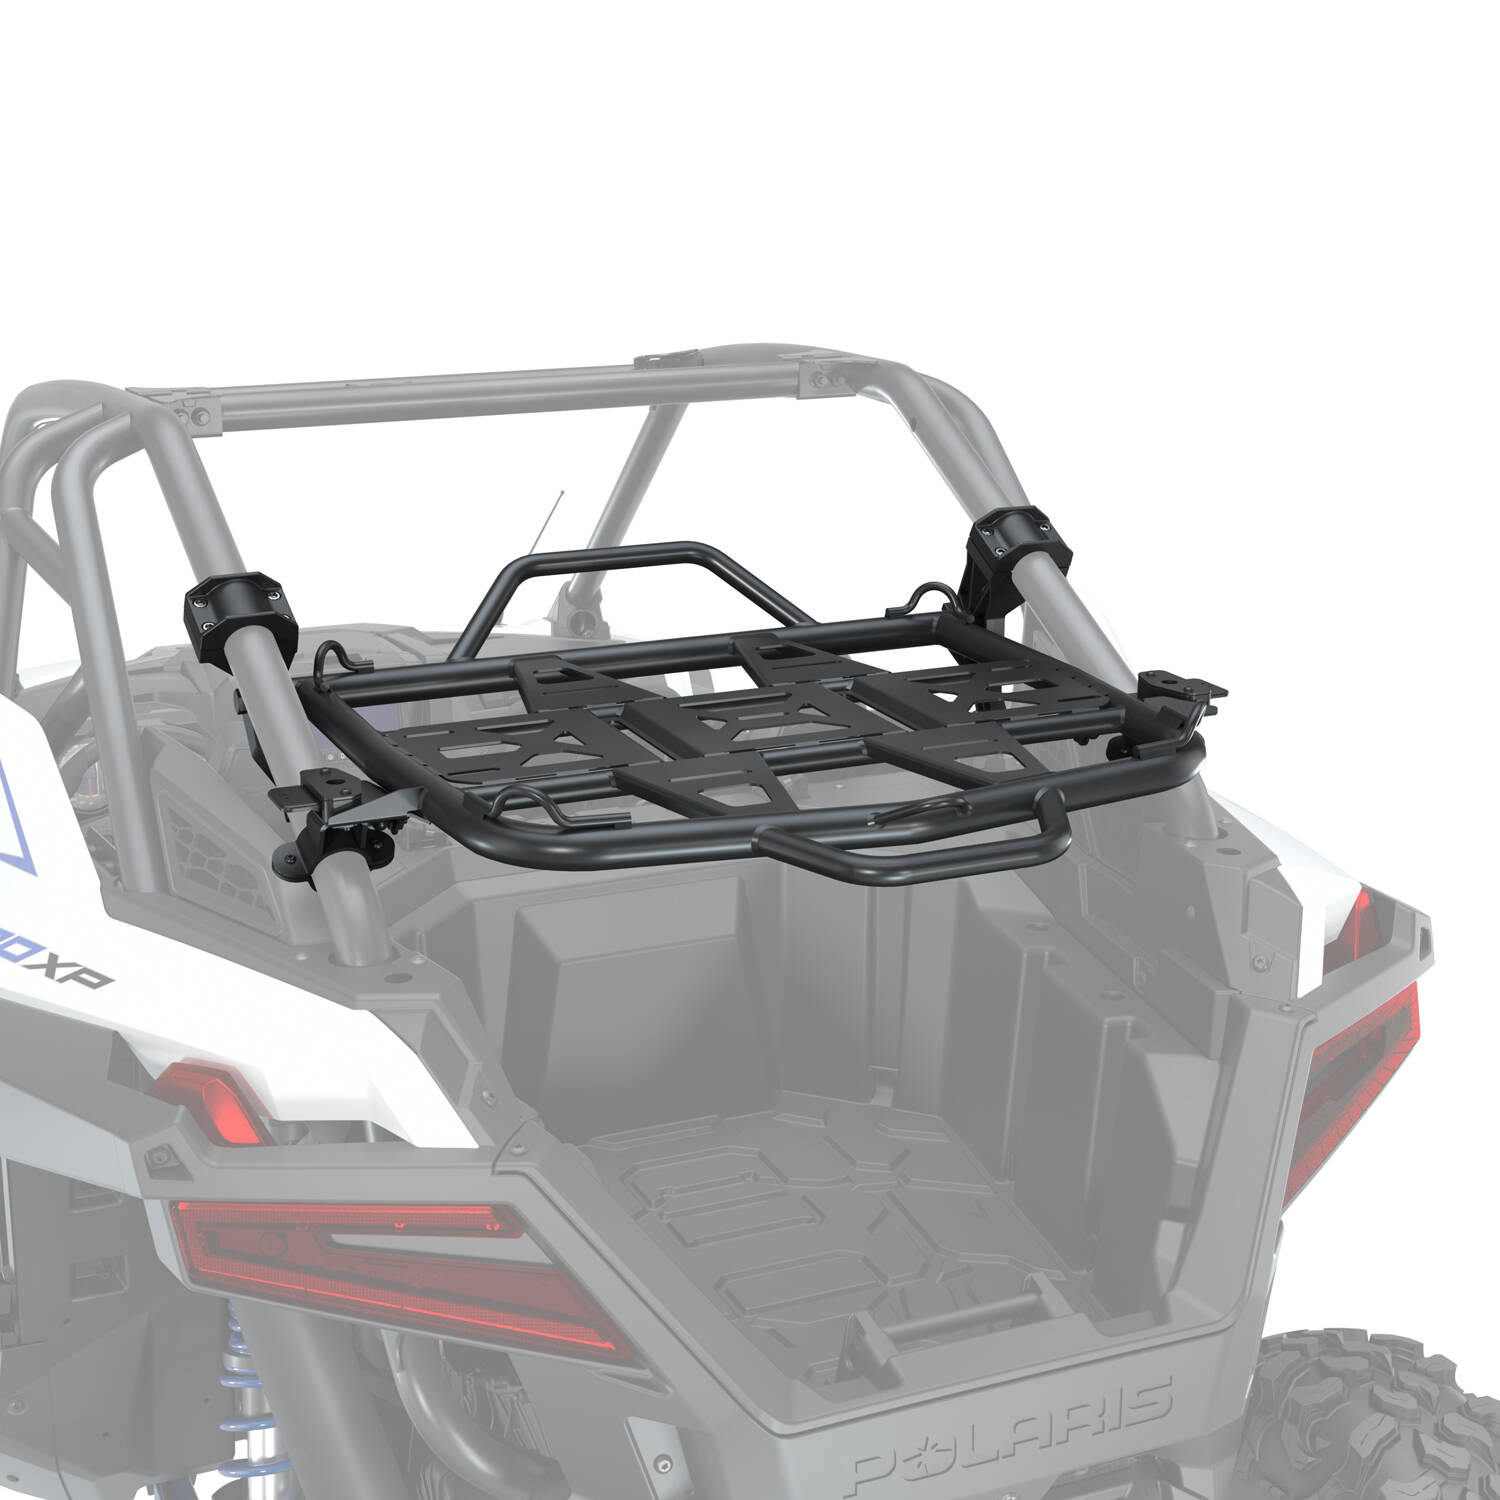 Pivoting Spare Tire Carrier